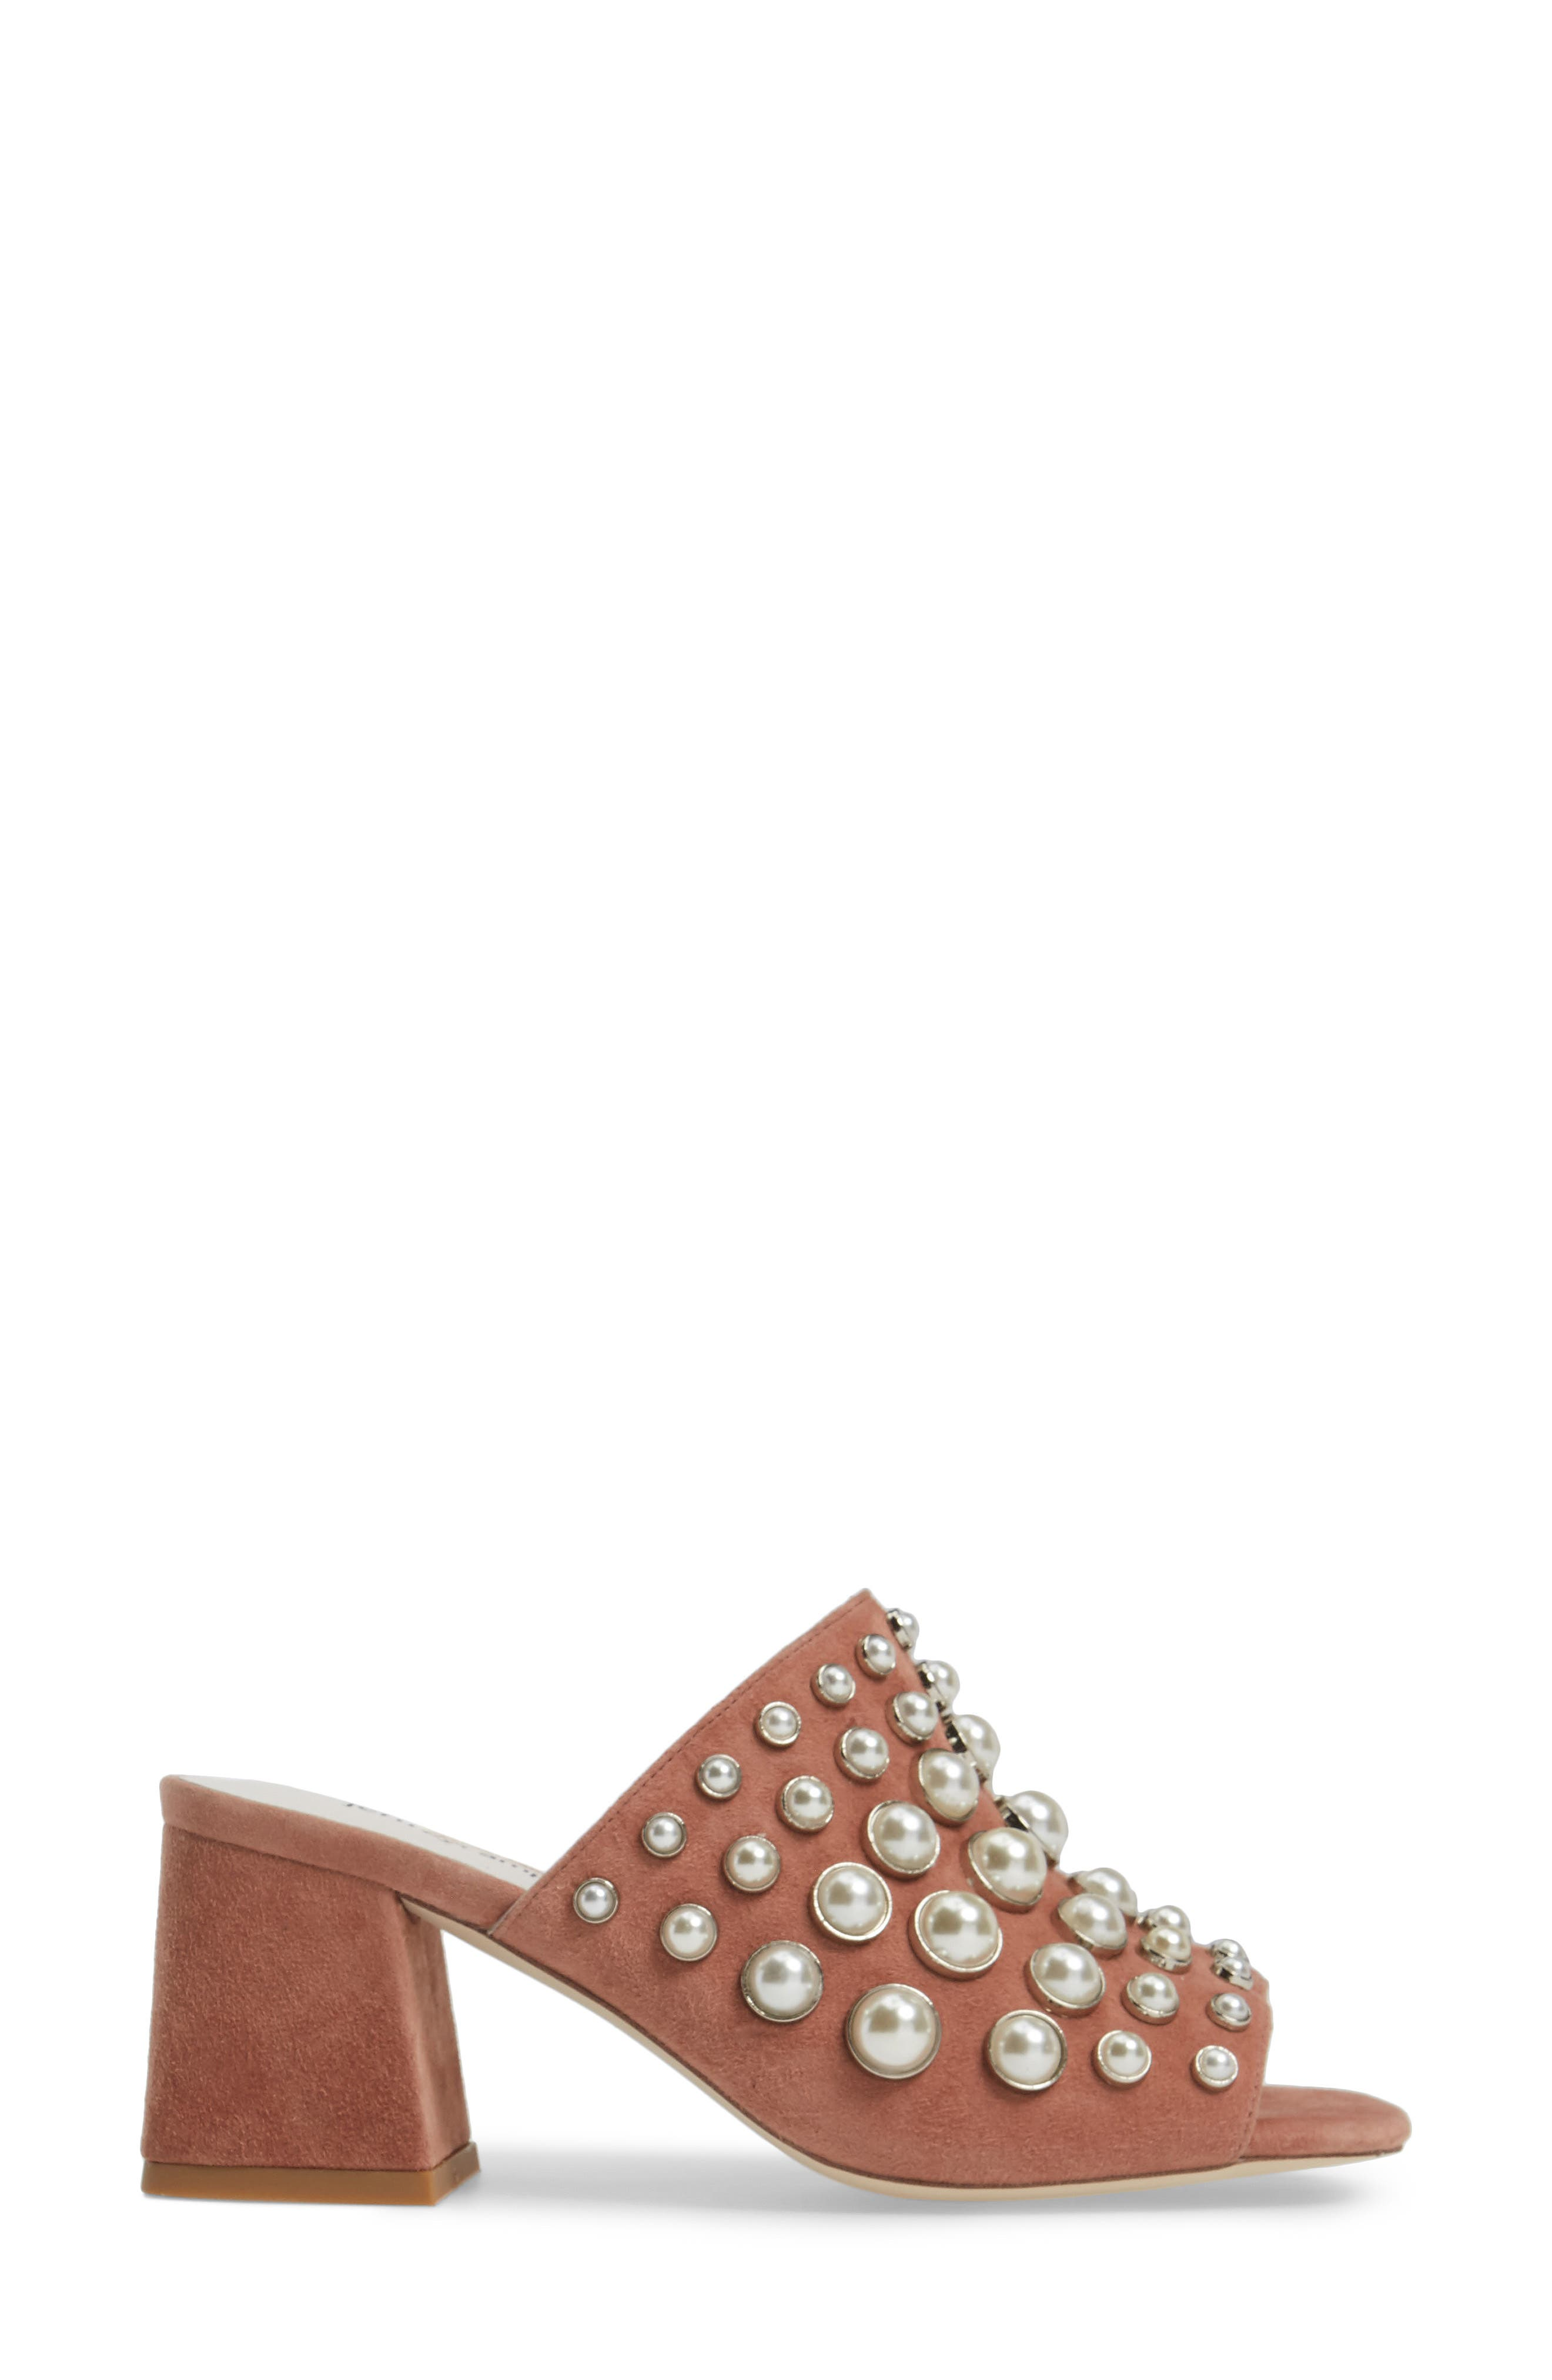 Perpetua Dome Stud Open-Toe Mule,                             Alternate thumbnail 3, color,                             Pink Suede Combo